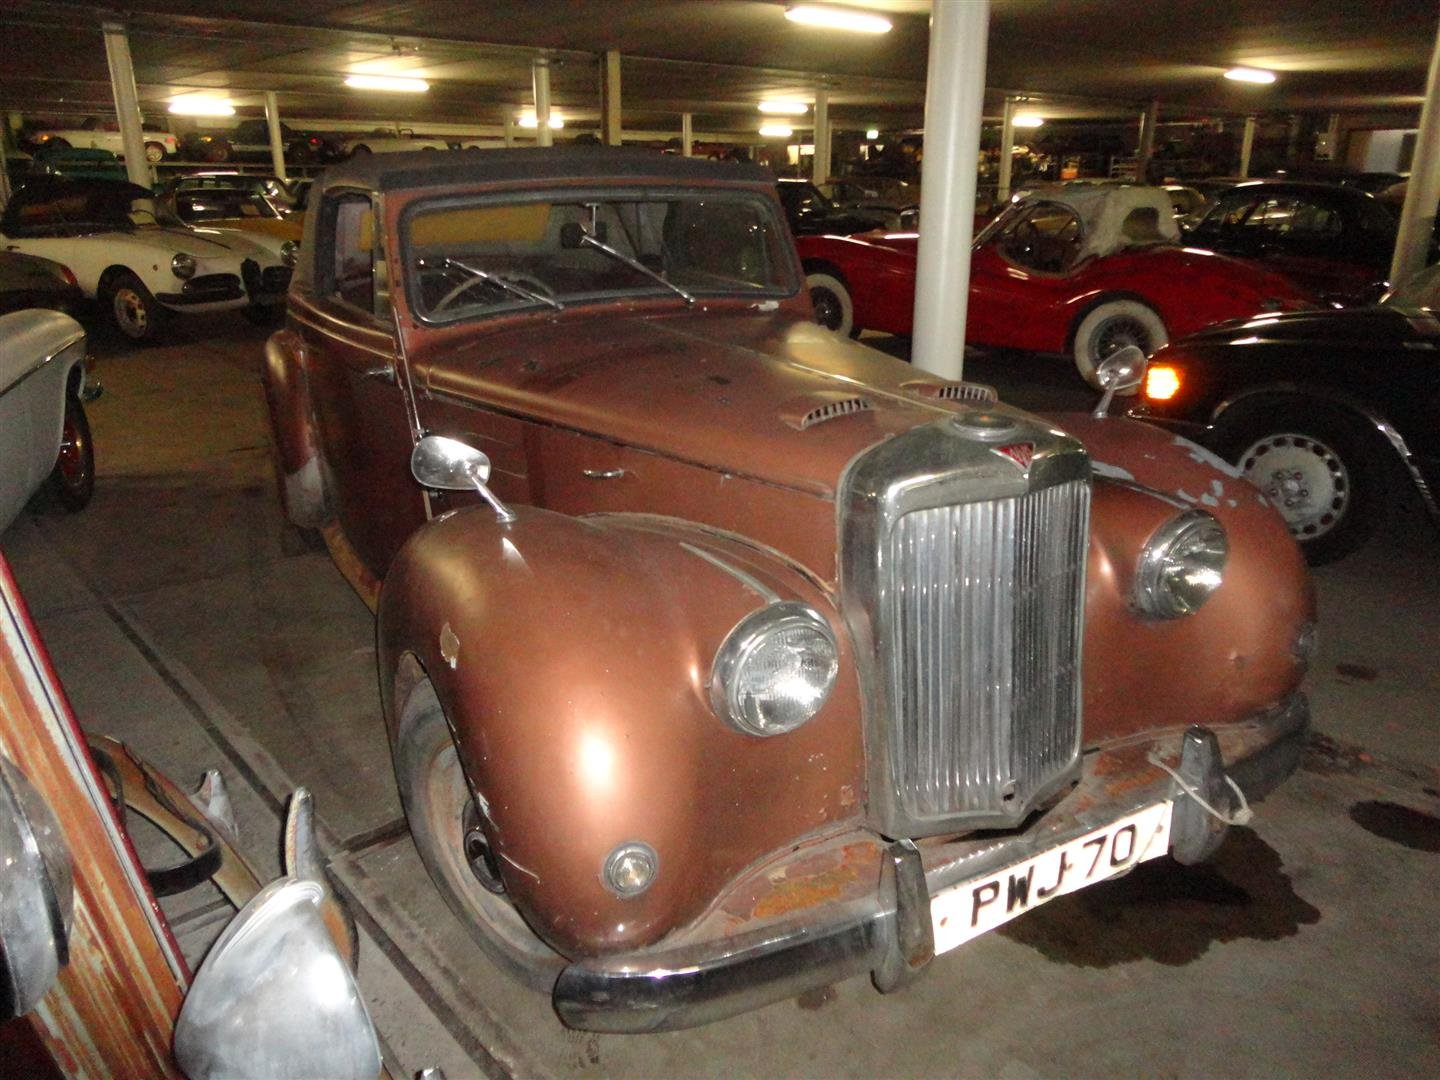 1952 Alvis TC convertible RHD for sale For Sale (picture 1 of 6)